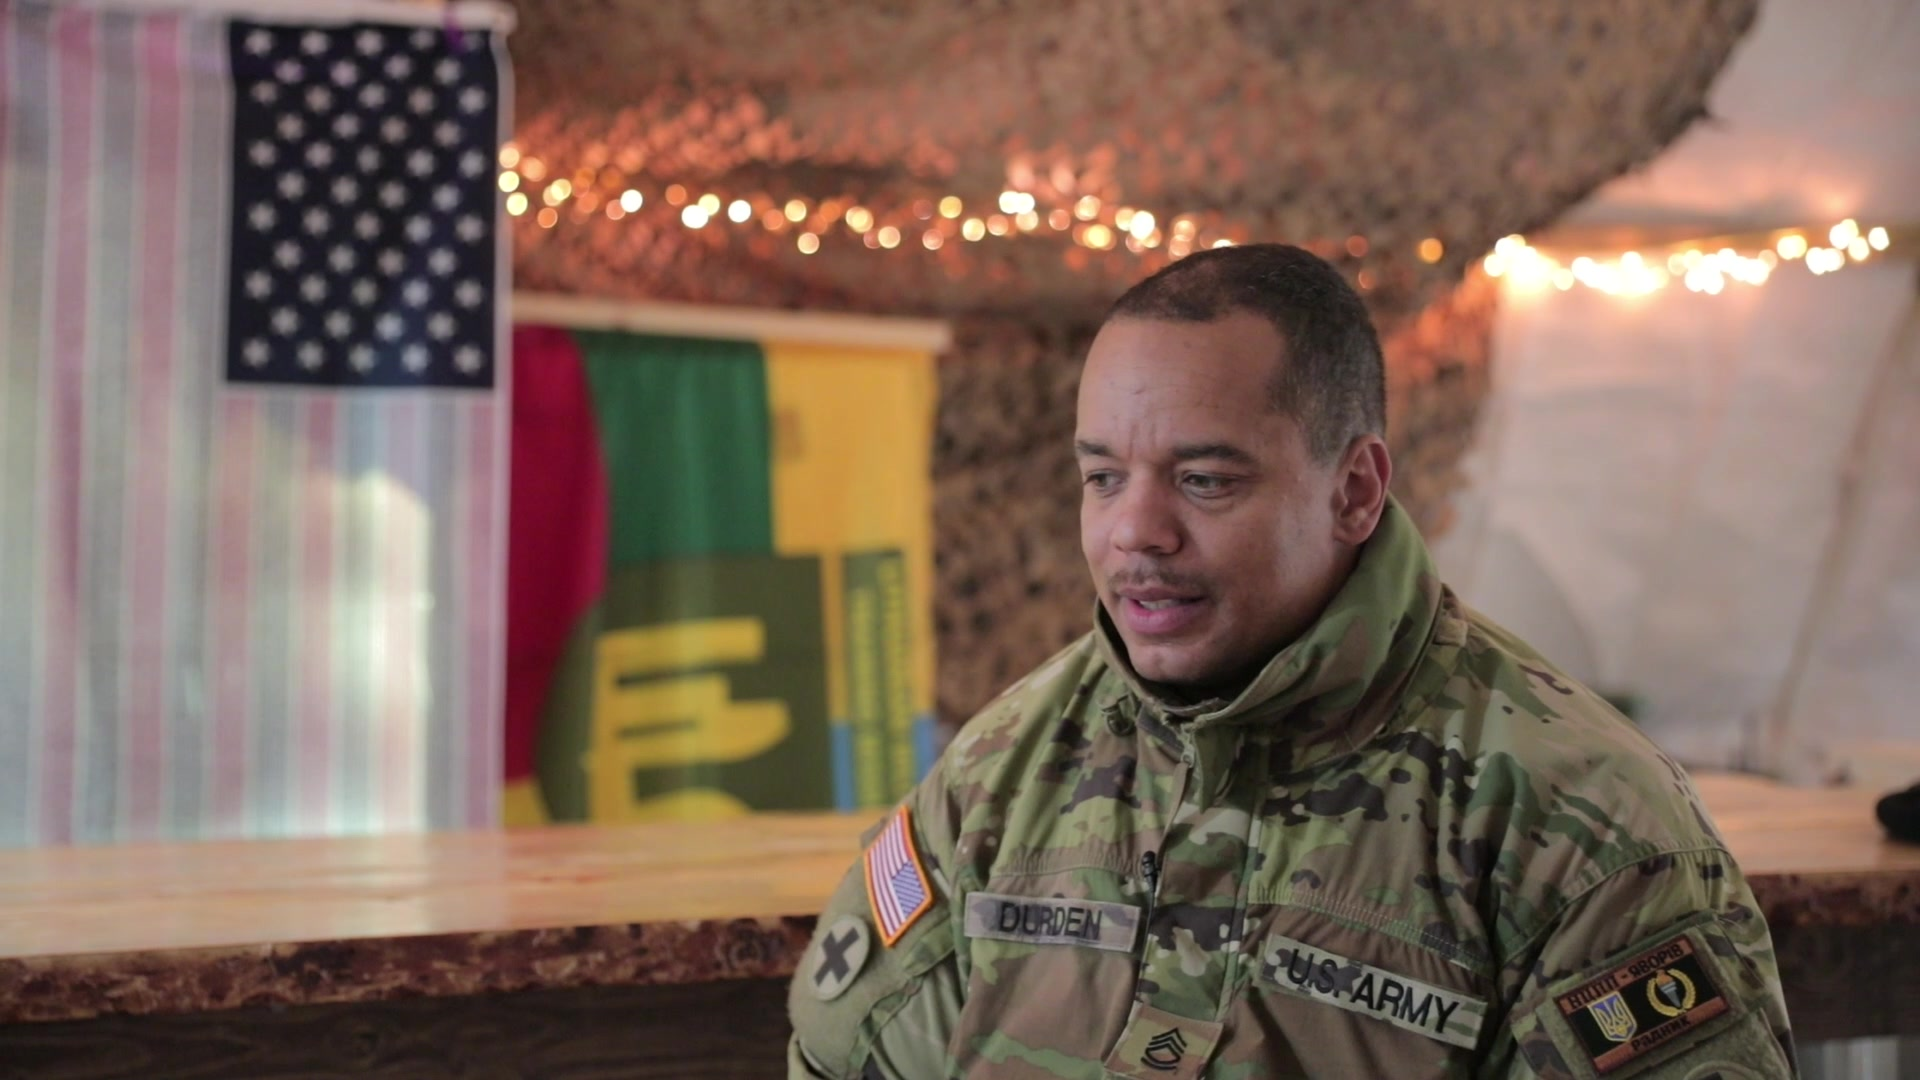 SFC Theodore Durden promotes a message of resiliency and dedication during mobilization to Ukraine.